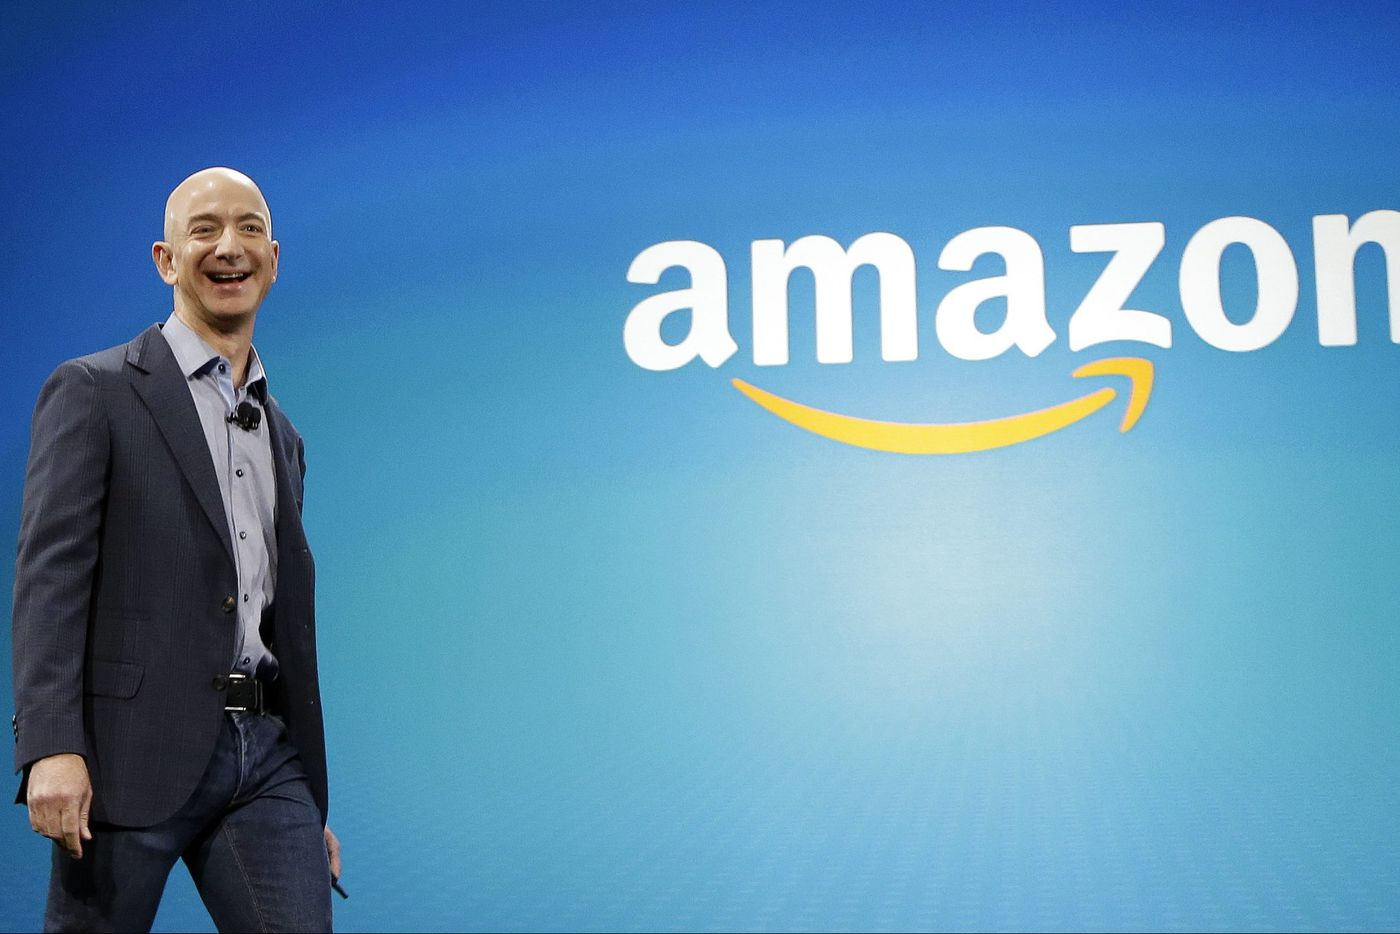 Amazon CEO Jeff Bezos Announces $2 Billion Fund to Help Homeless Families